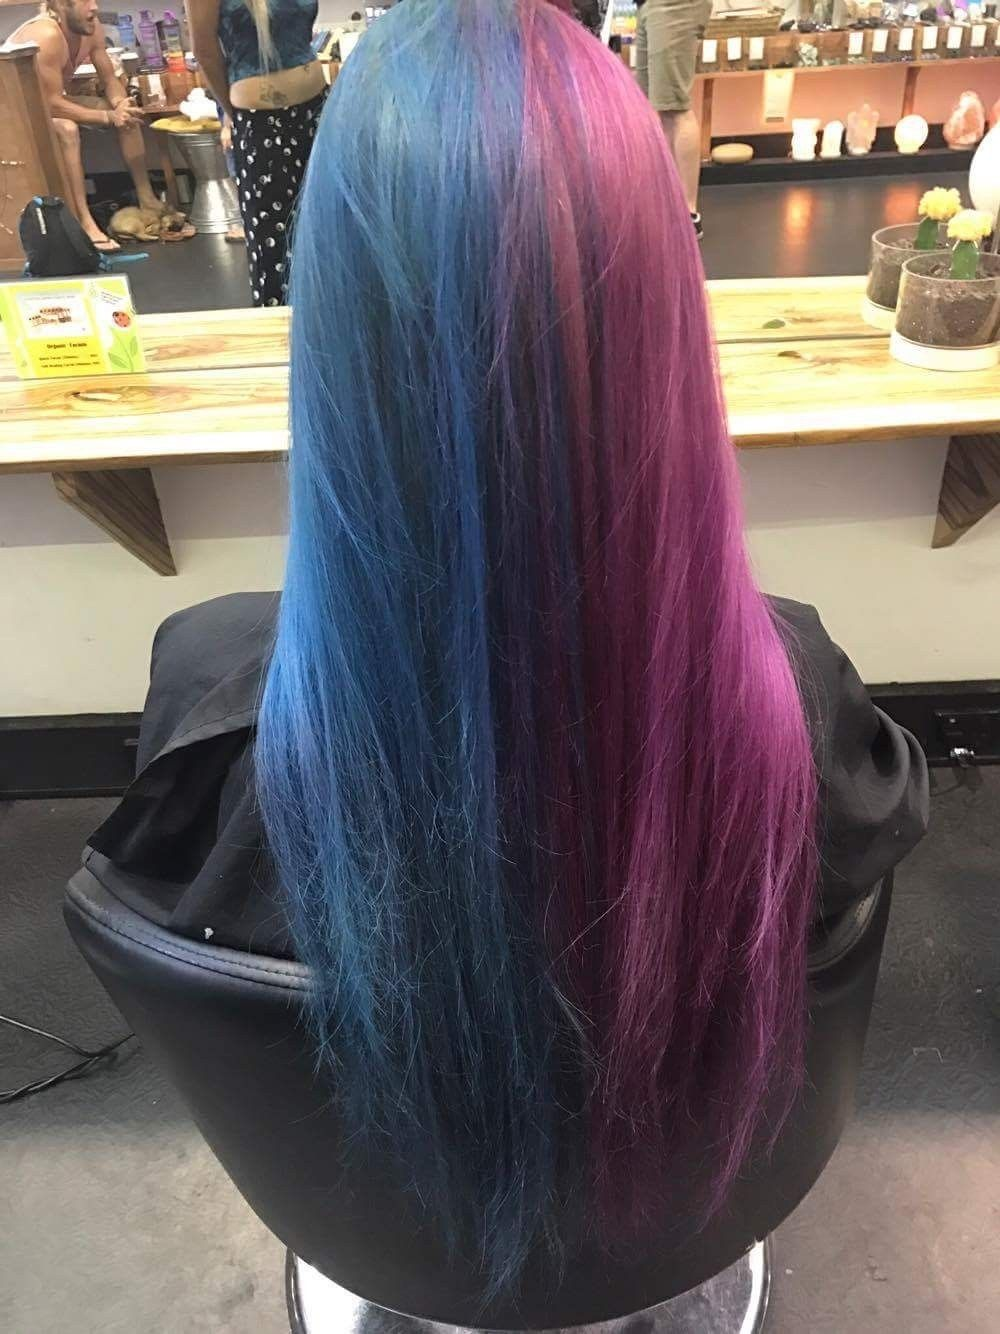 This Magical Color Changing Hair Goes From Blue To Pink In Seconds Girl Hair Colors Split Dyed Hair Aesthetic Hair